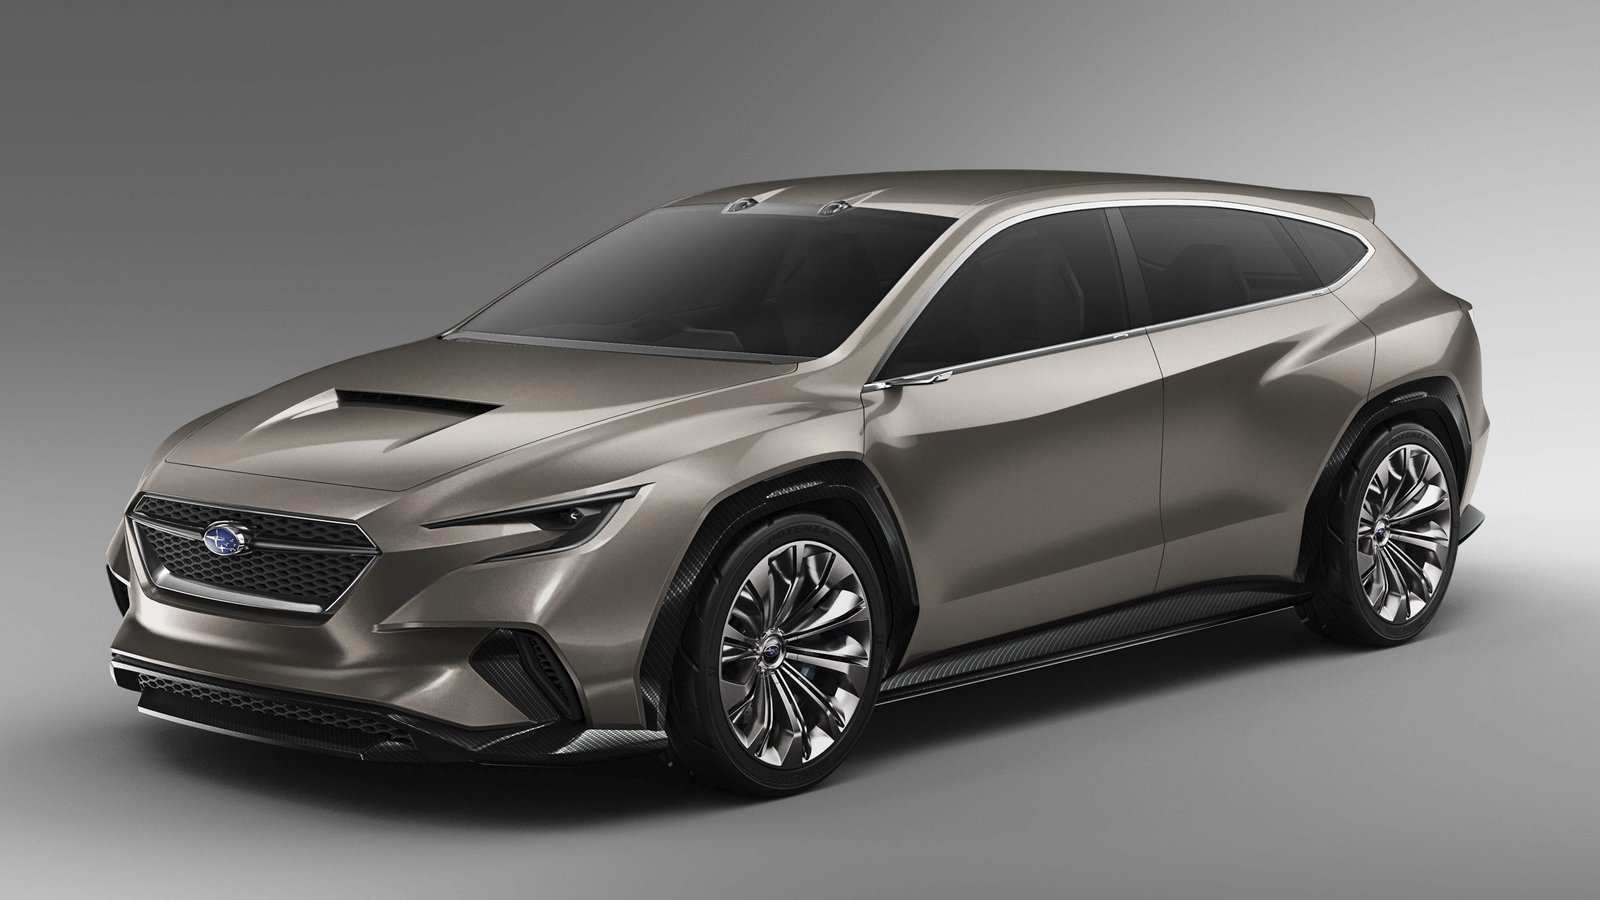 34 Gallery of Subaru Cars 2020 Spesification with Subaru Cars 2020